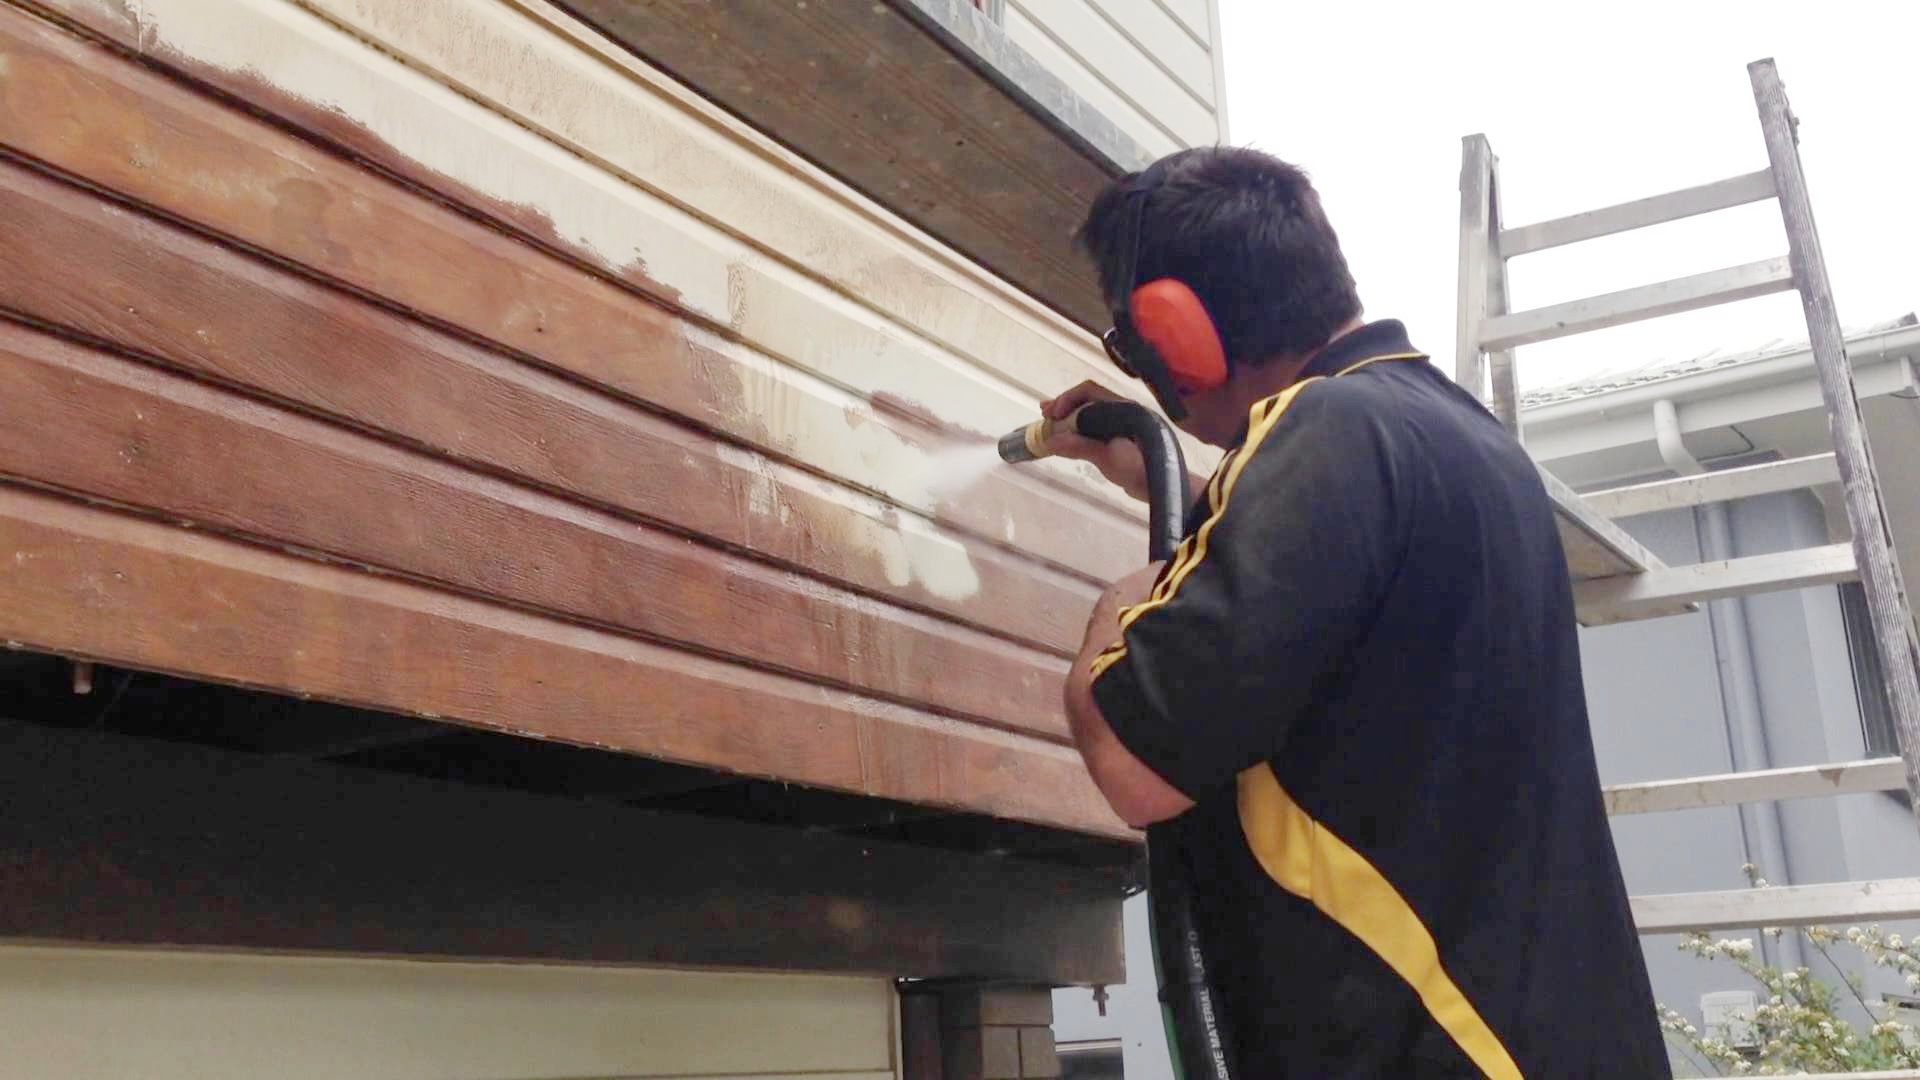 Residential - Sandblasting and Dustless Blasting concrete, brick and wood, inside the home and out.